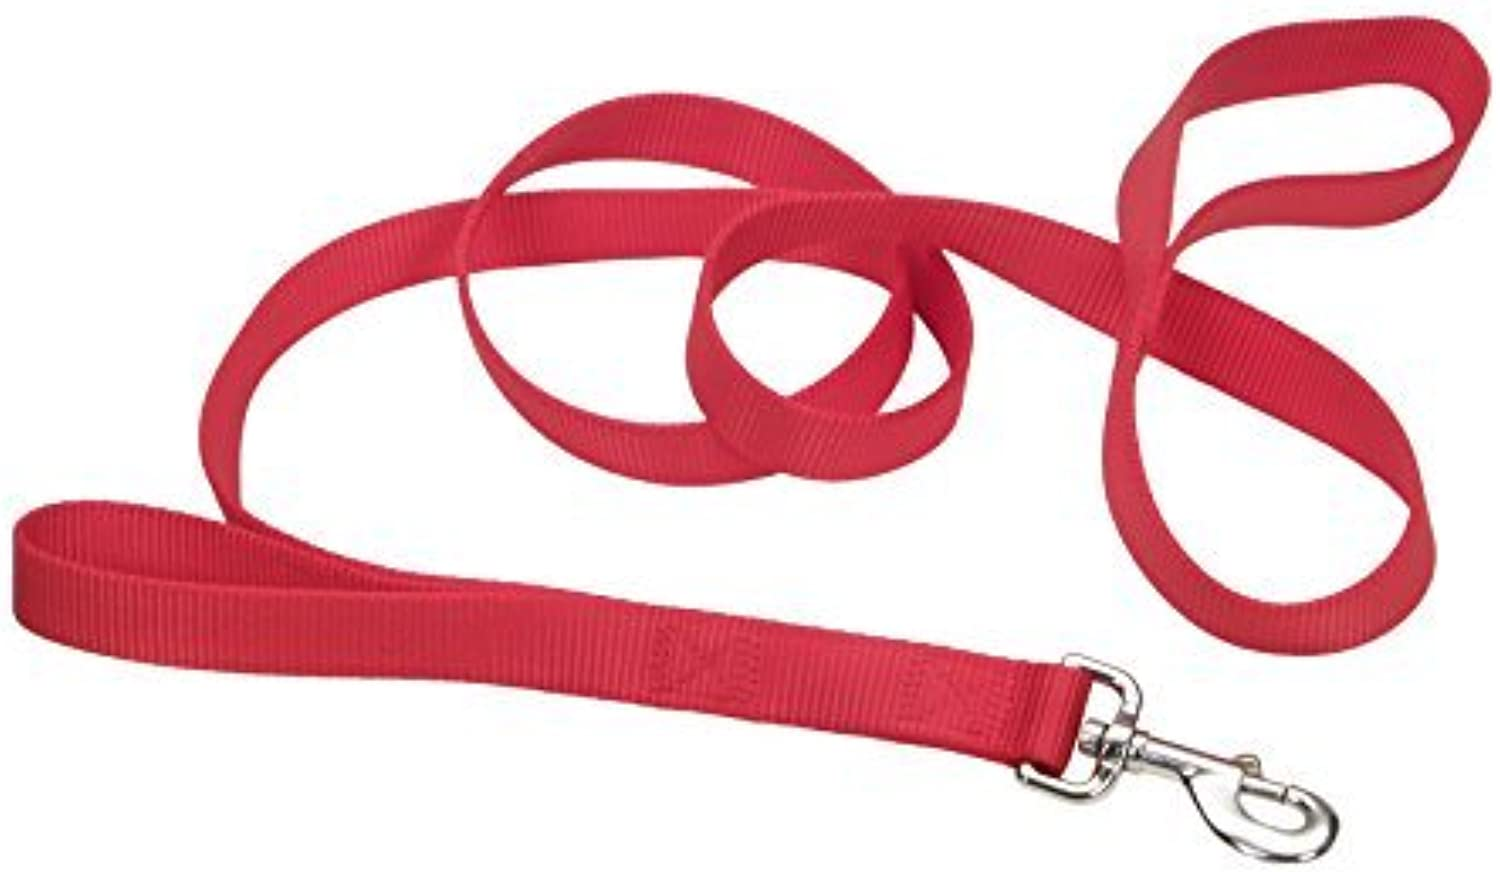 Coastal Pet Products DCP904HRED Nylon Loops 2 Double Handle Dog Leash, 1Inch by 4Feet, Red by Coastal Pet